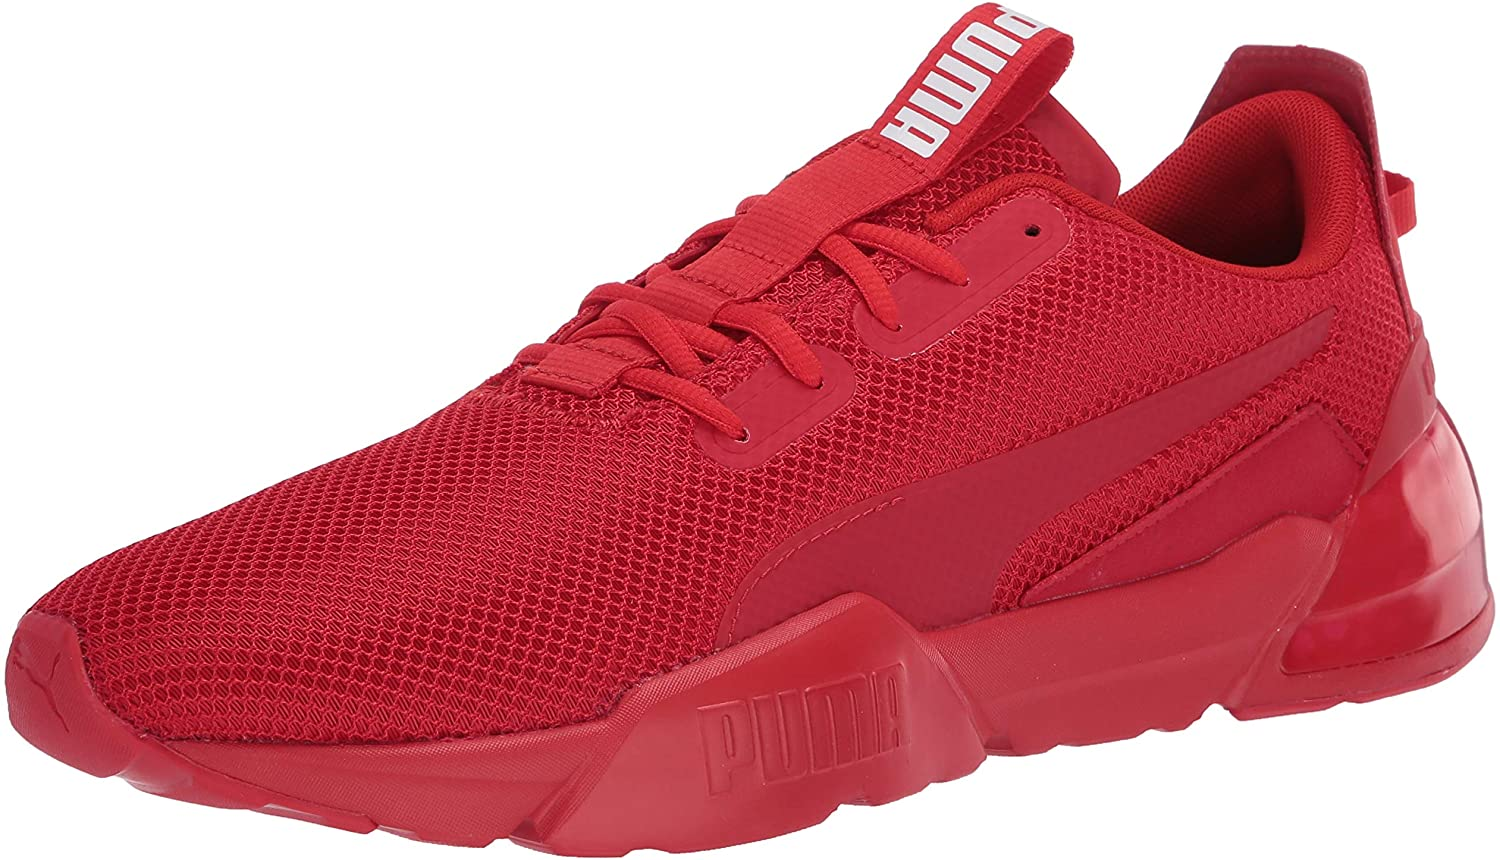 PUMA Men's Cell Phase Sneaker, High Risk red-high Risk Red, 8 M US